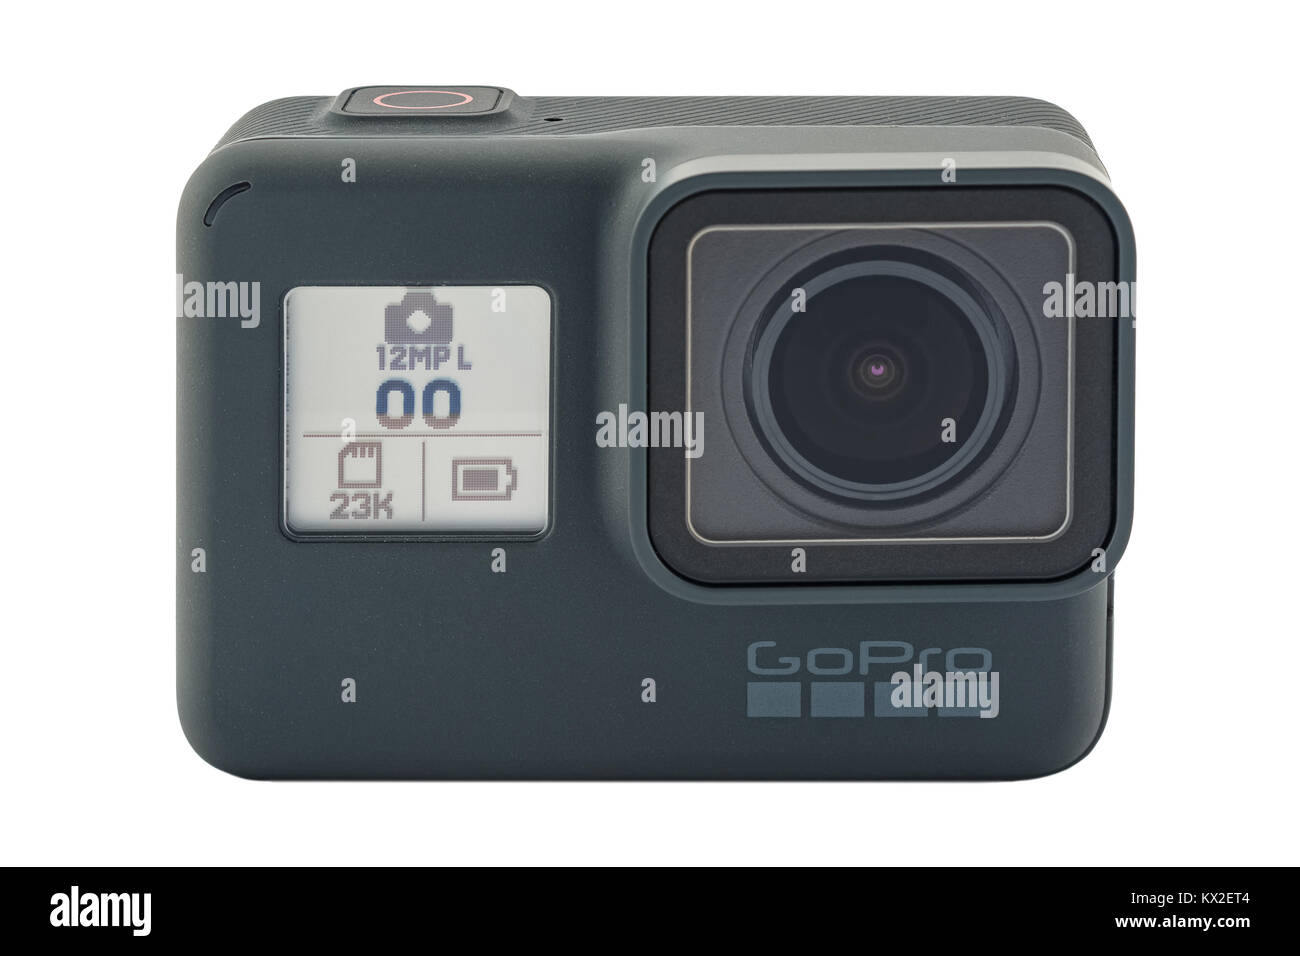 RIGA, LATVIA - NOVEMBER 25, 2017: GoPro HERO 6 Black. Supports 4k Ultra HD video up to 60 fps and 1080p up to 240 - Stock Image